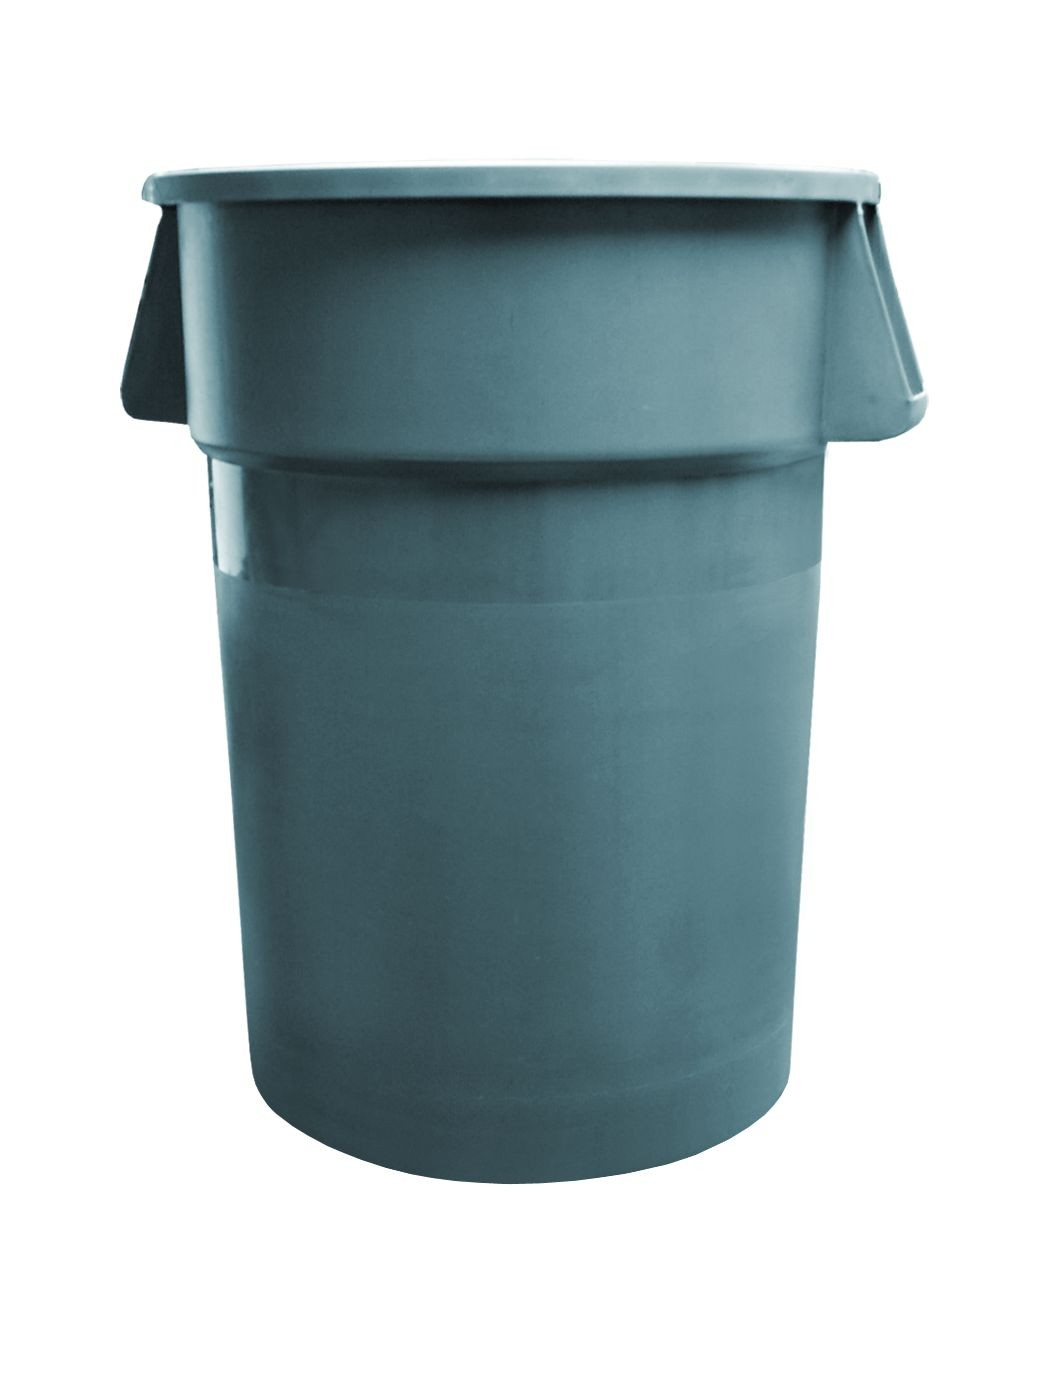 Update International TC-32G 32 Gallon Gray Plastic Trash Can - 1/2 doz